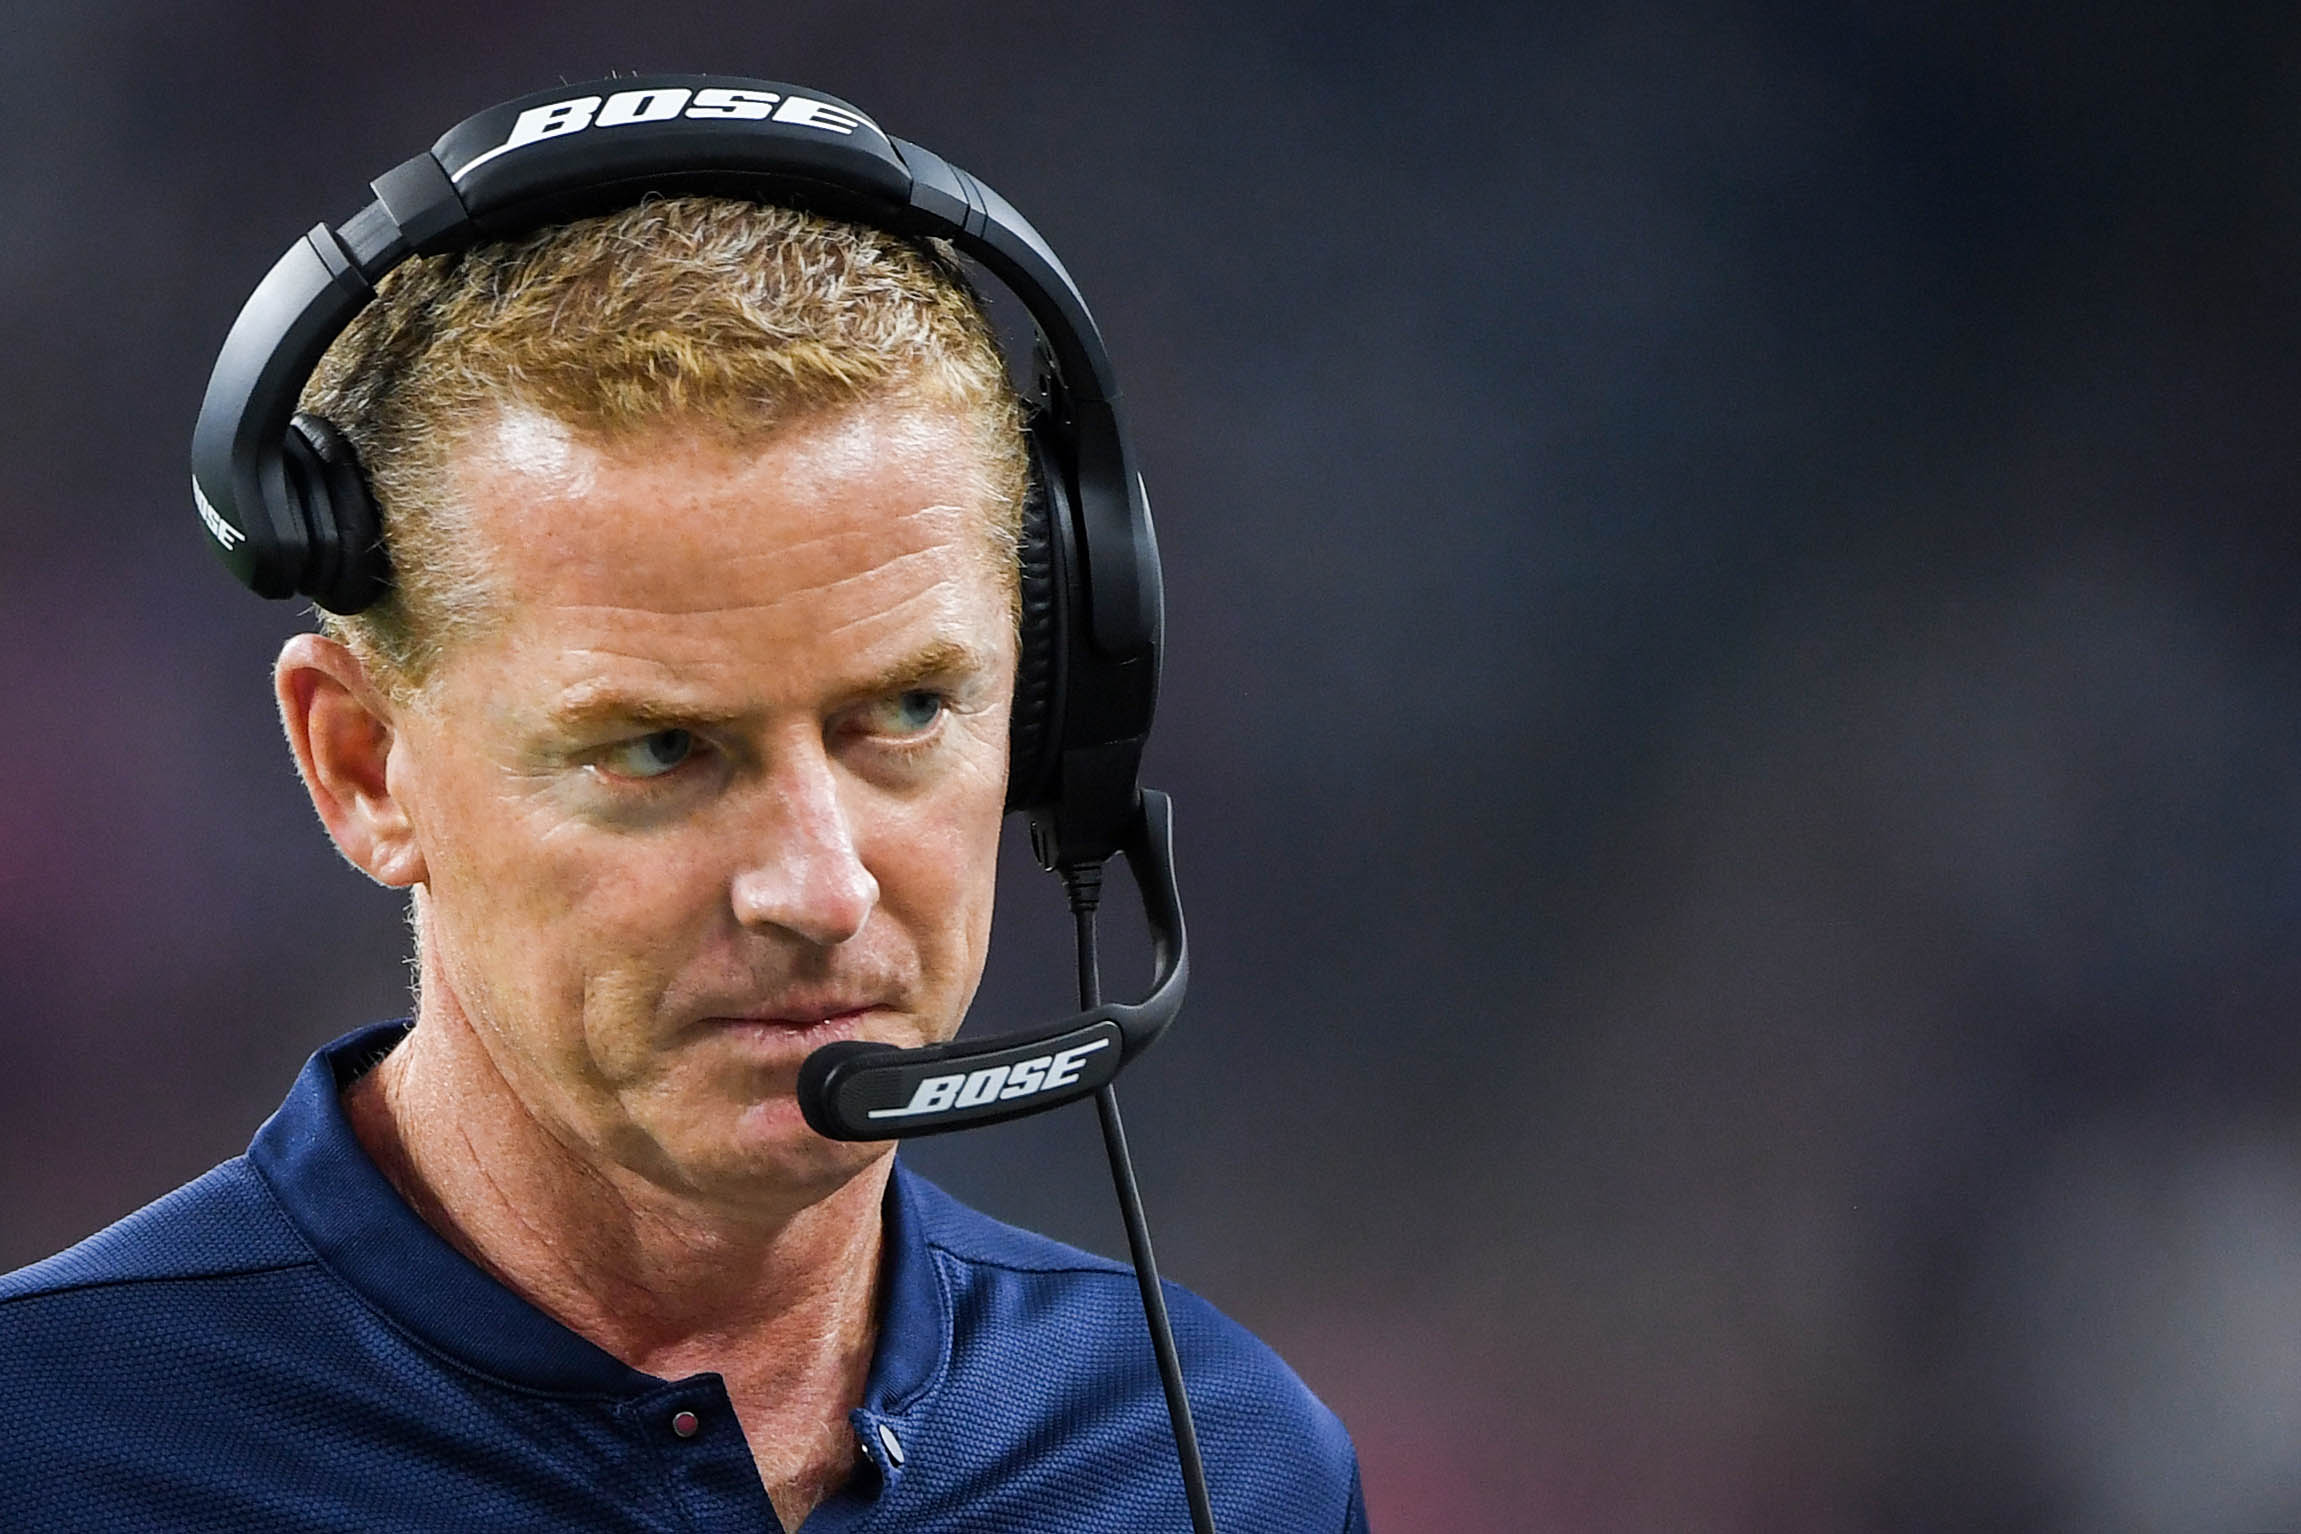 Aug 30, 2018; Houston, TX, USA; Dallas Cowboys head coach Jason Garrett looks on during the first quarter against the Houston Texans at NRG Stadium. Mandatory Credit: Shanna Lockwood-USA TODAY Sports